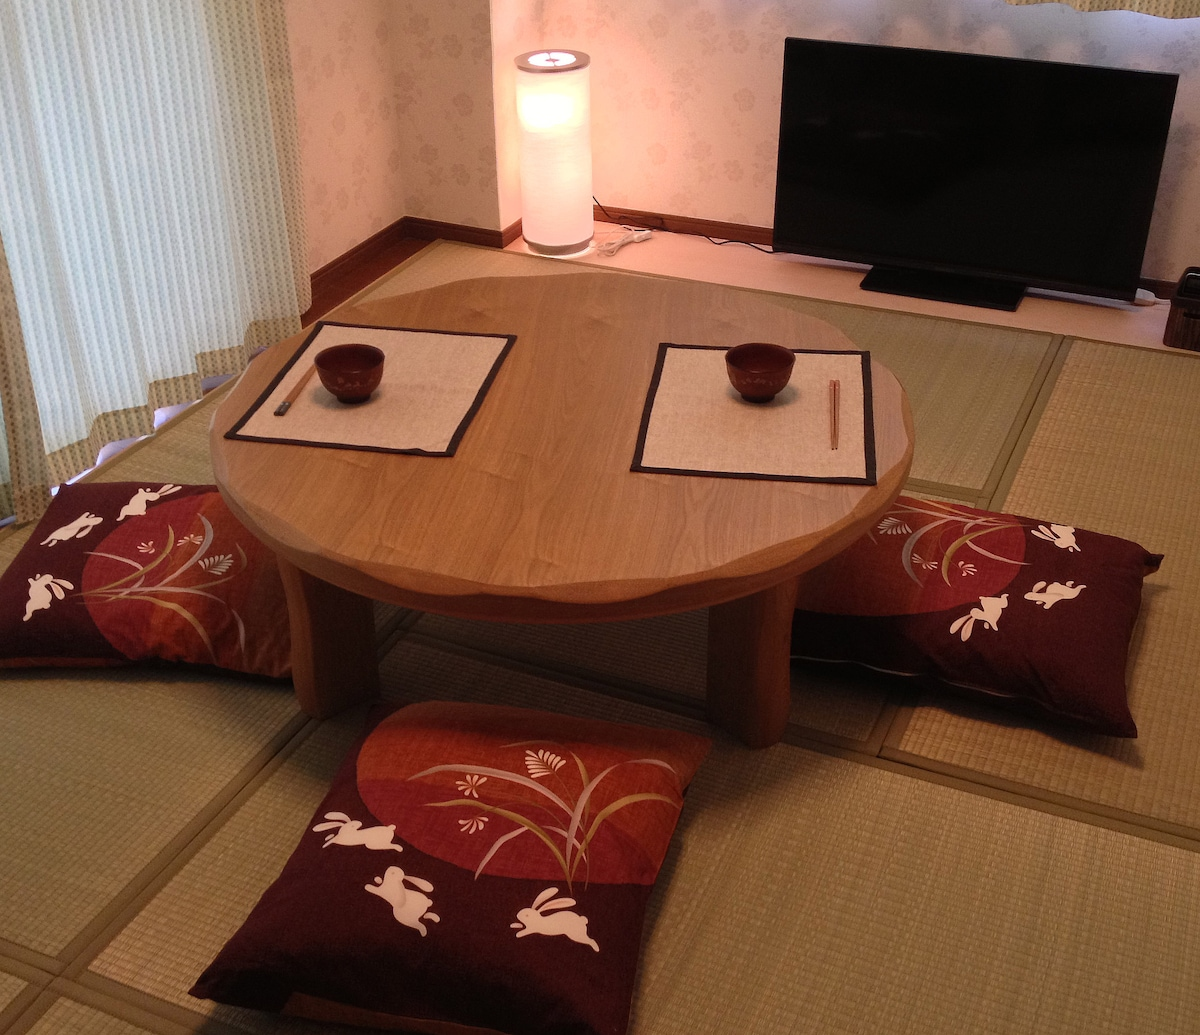 A tatami mat room and a low table